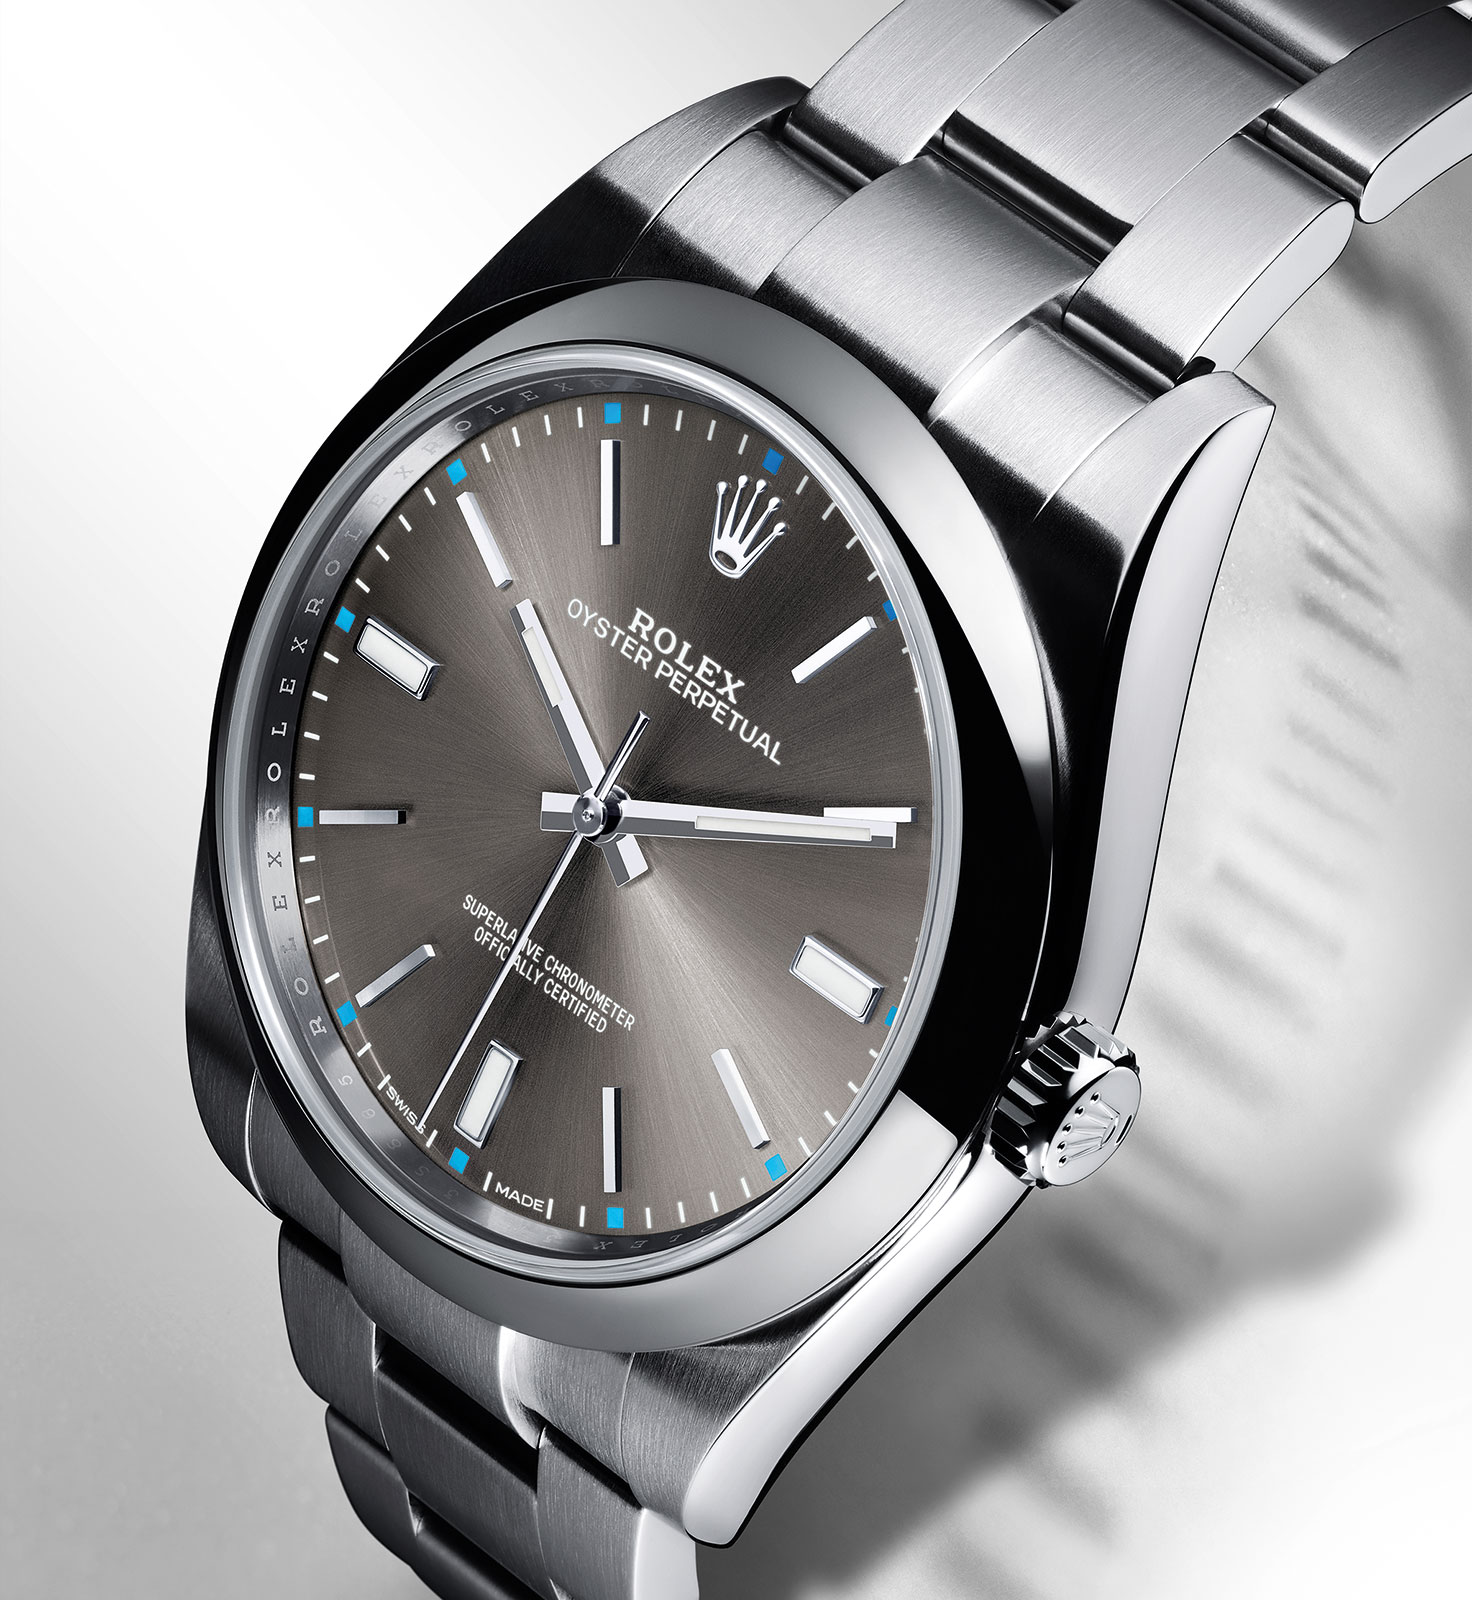 Watches By SJX: Rolex Introduces The Oyster Perpetual 39 ...